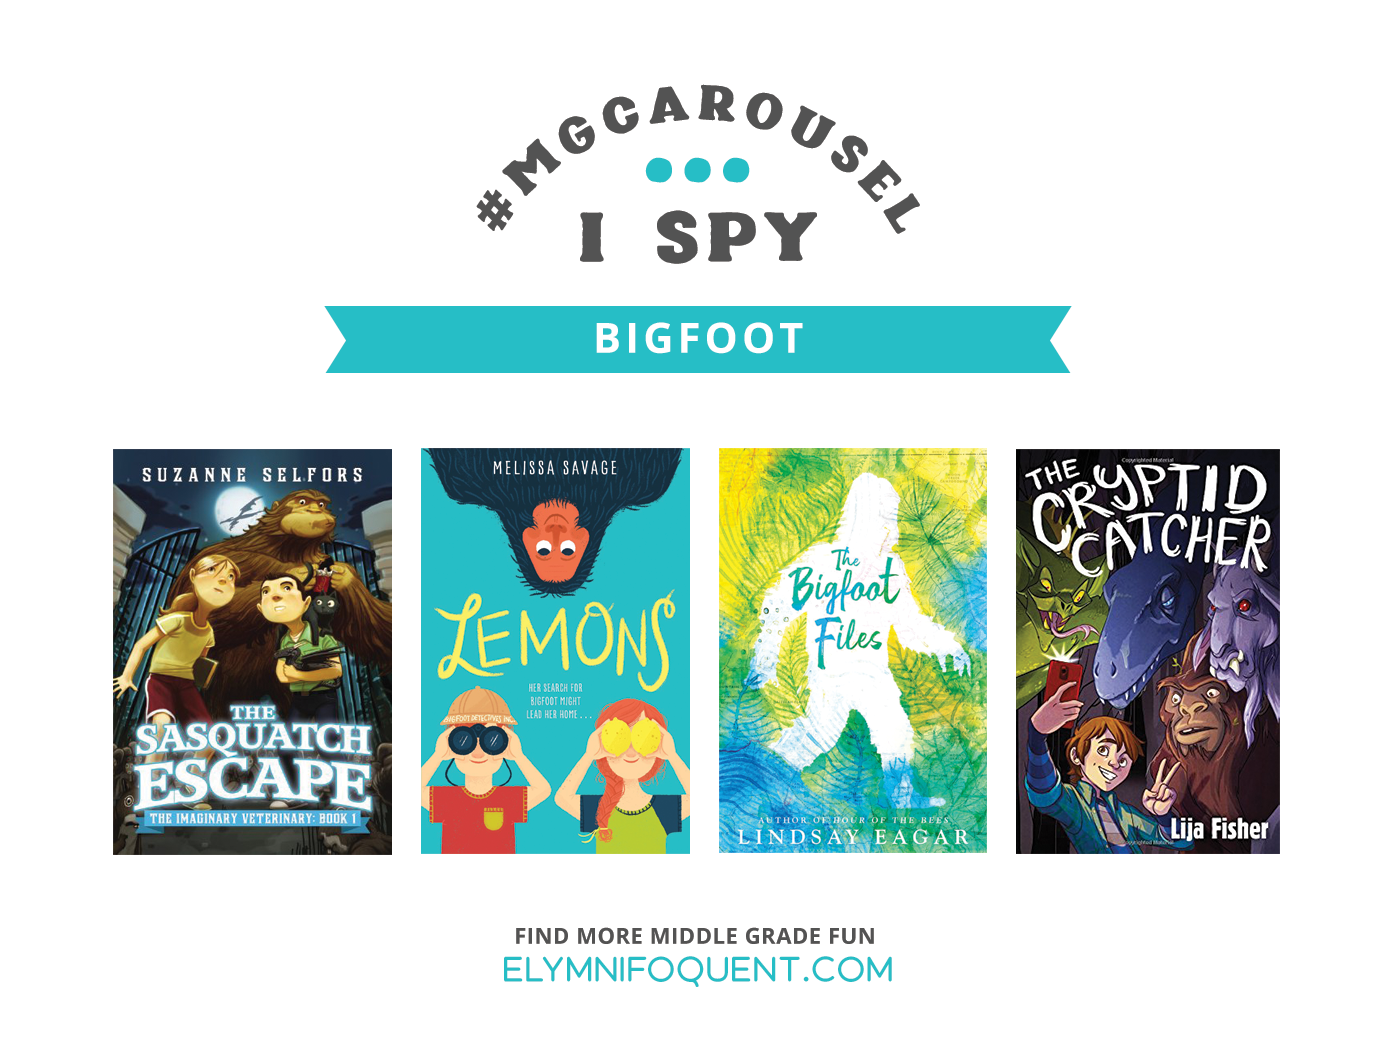 I SPY: Bigfoot featuring the book covers of THE SASQUATCH ESCAPE by Suzanne Selfors; LEMONS by Melissa Savage; THE BIGFOOT FILES by Lindsay Eagar; and THE CRYPTID CATCHER by Lija Fisher.